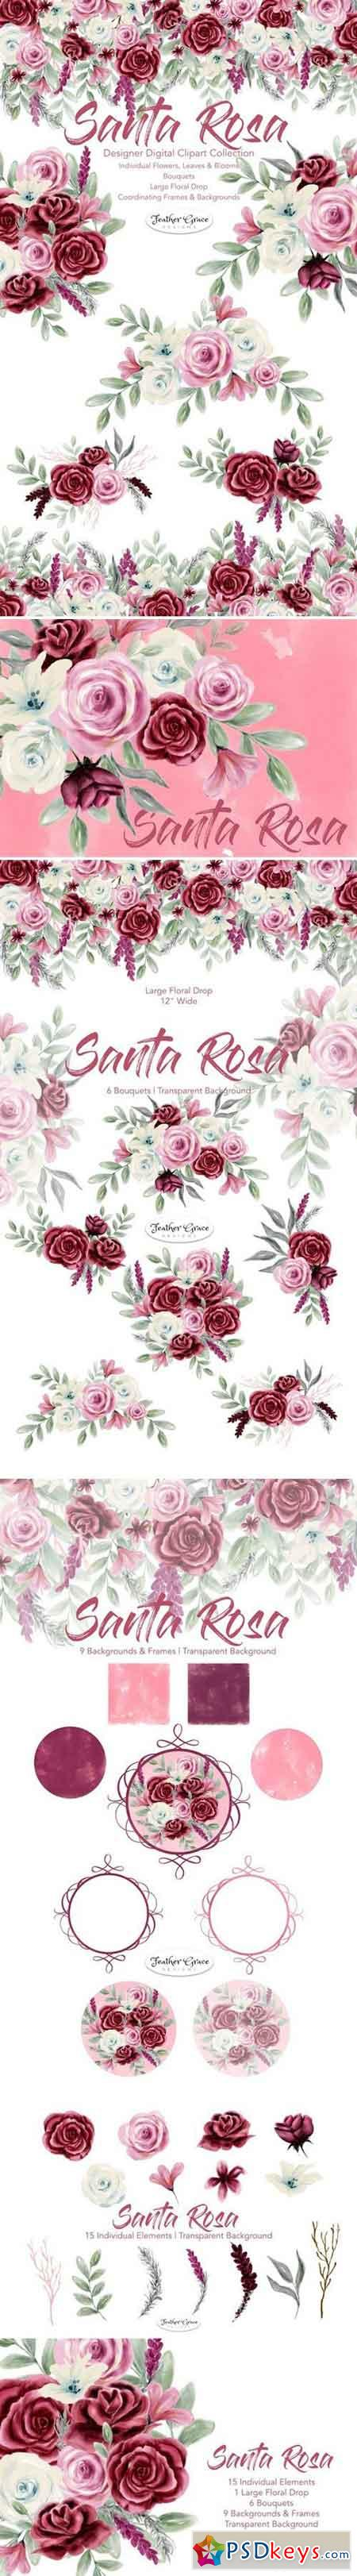 Watercolor Flowers Pink Burgundy 1943271